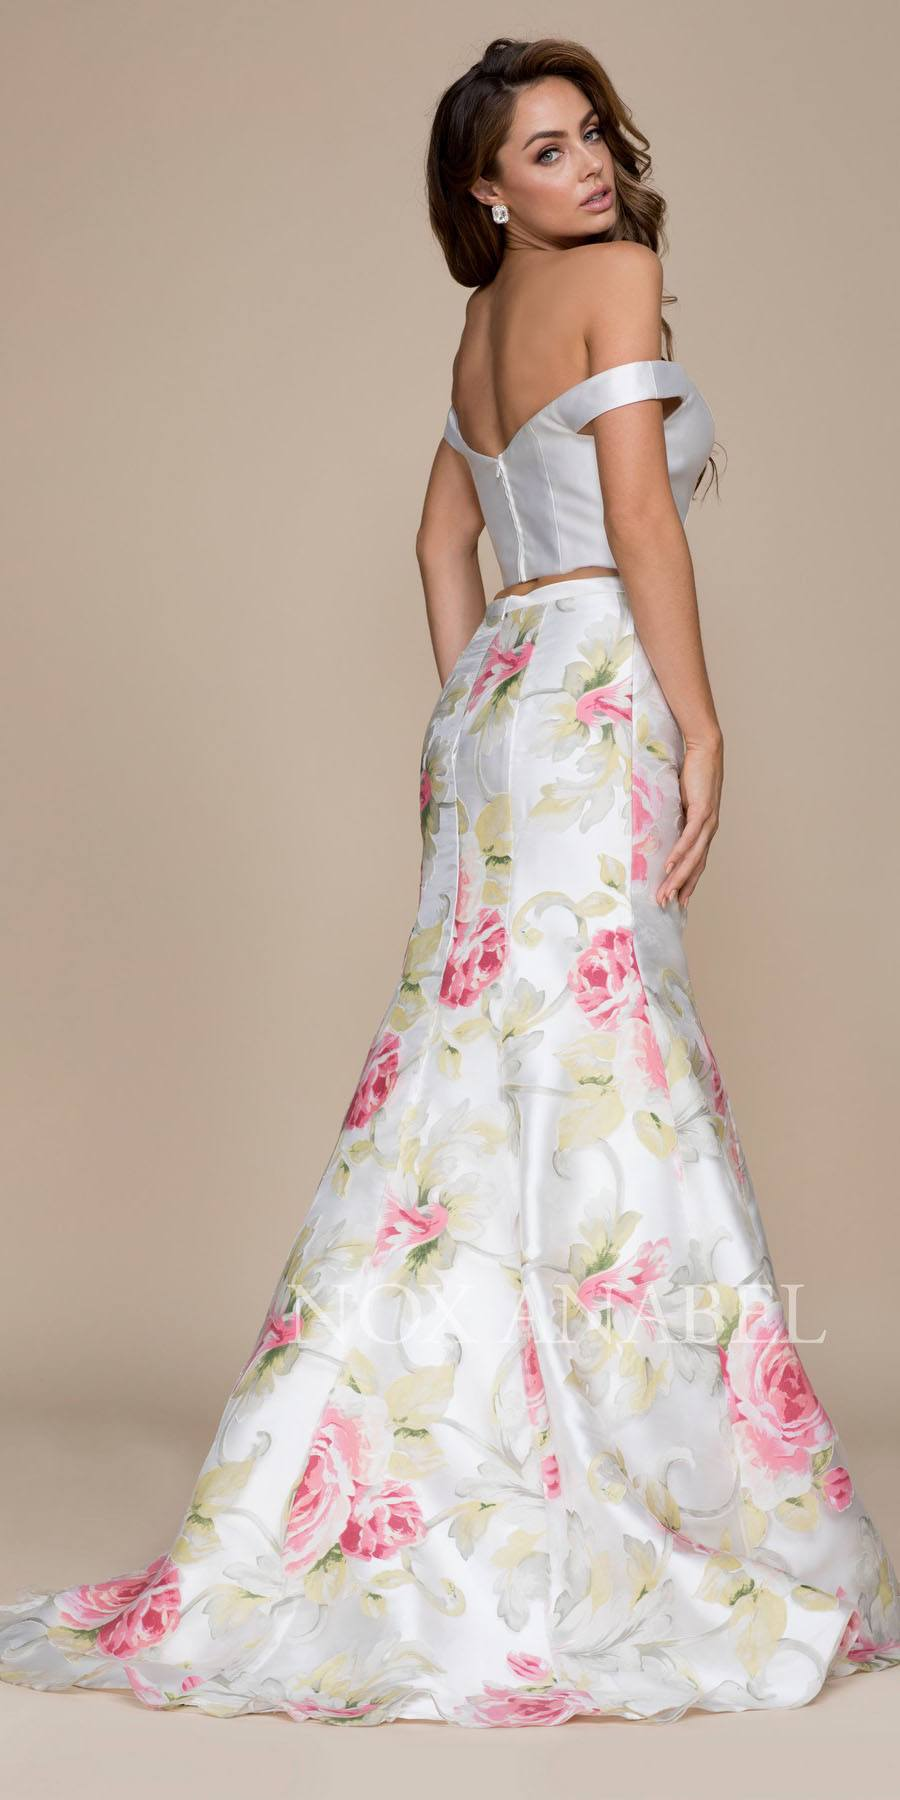 Two Piece Prom Gown Off Shoulder White Top Floral Print Skirt ...